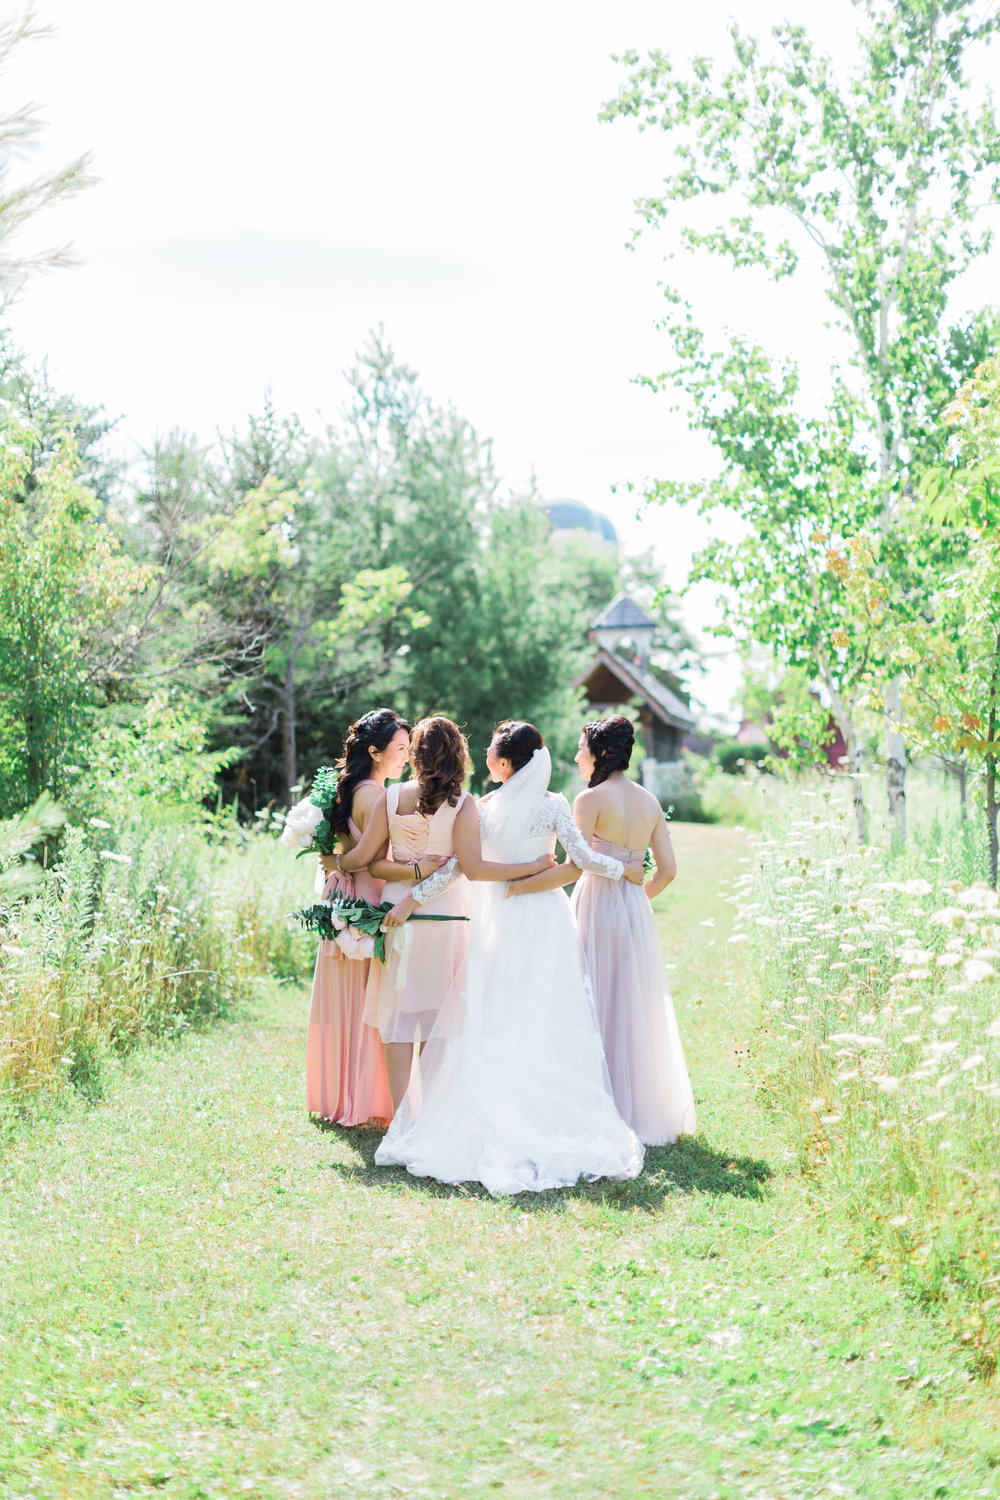 Toronto Fine Art Photographer - Belcroft Manor Wedding - Bridesmaids-6.jpg